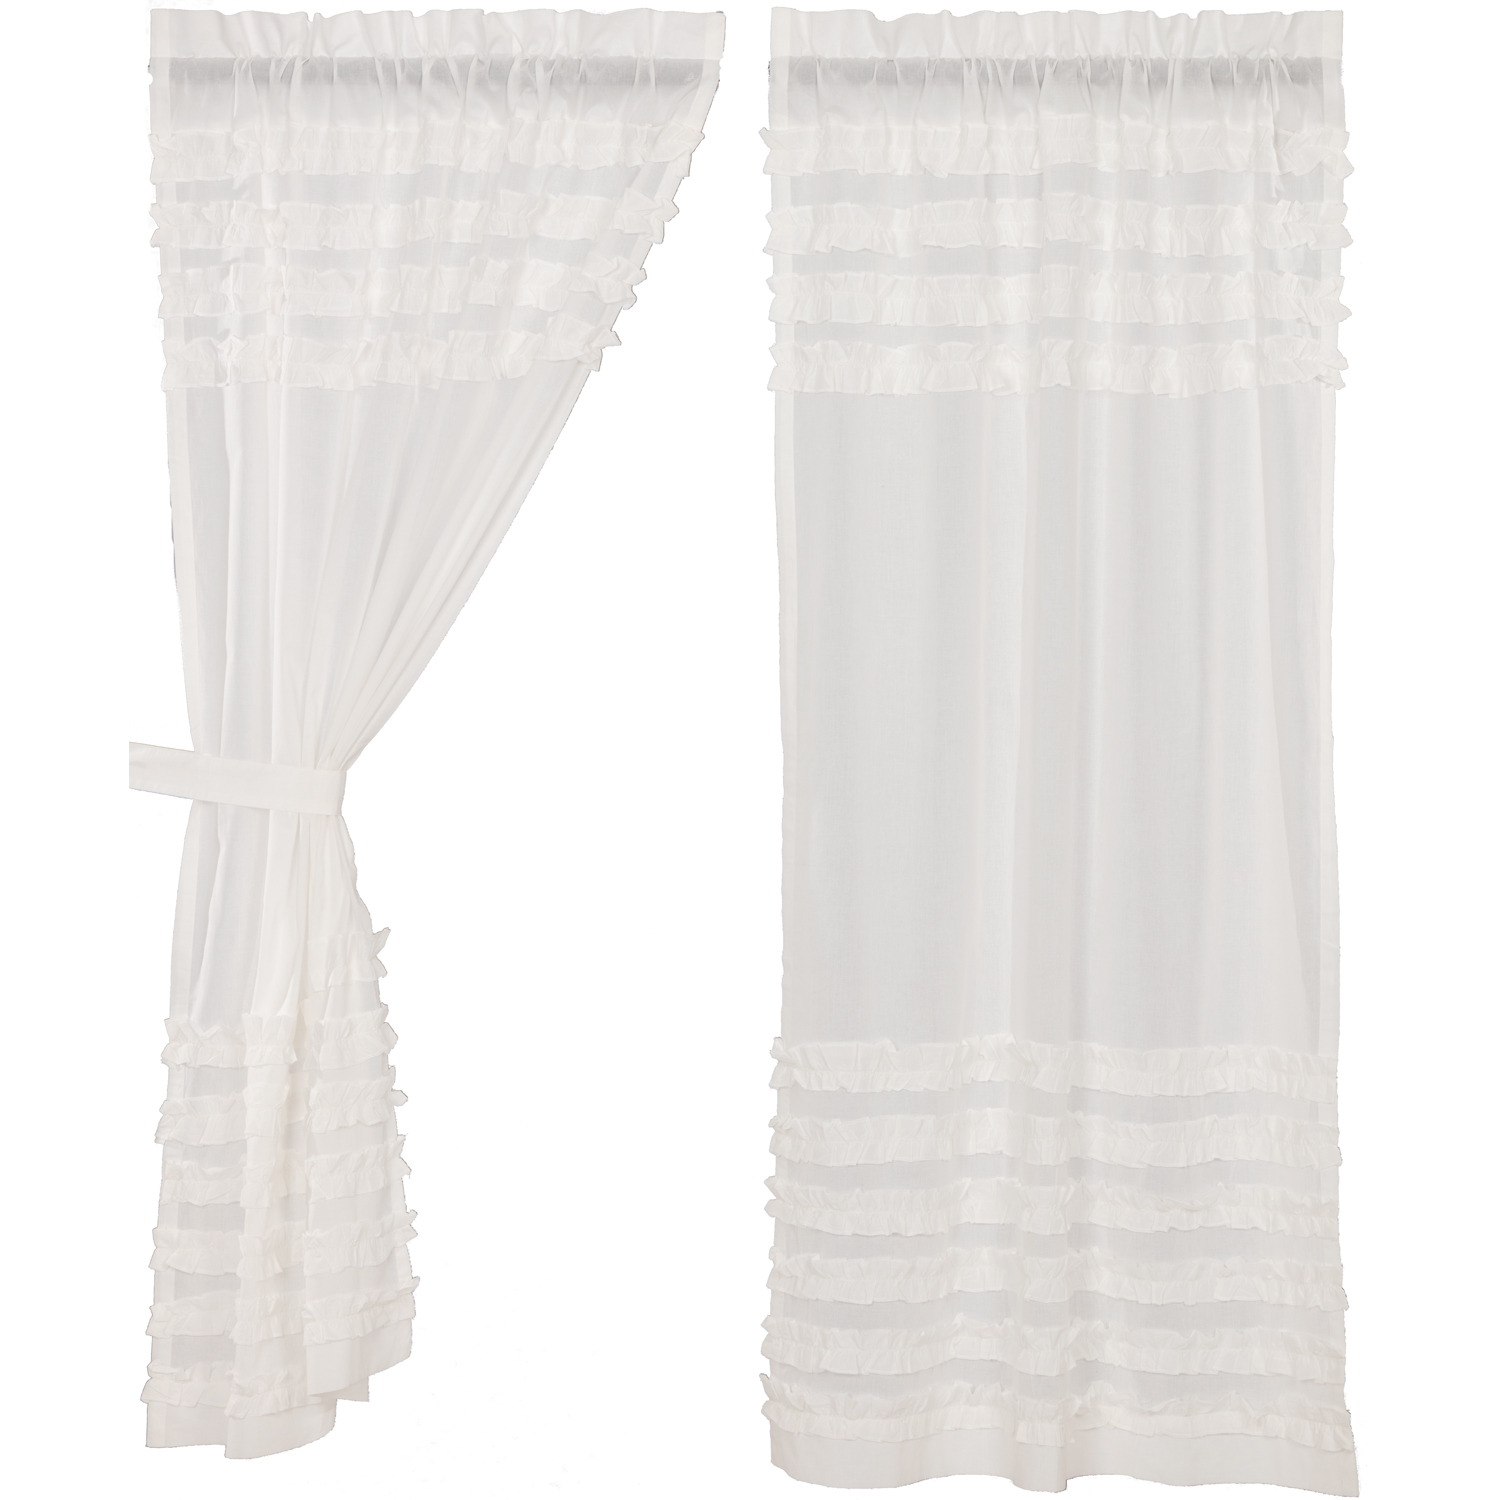 White Ruffled Sheer Petticoat Short Panel Set of 2 63x36